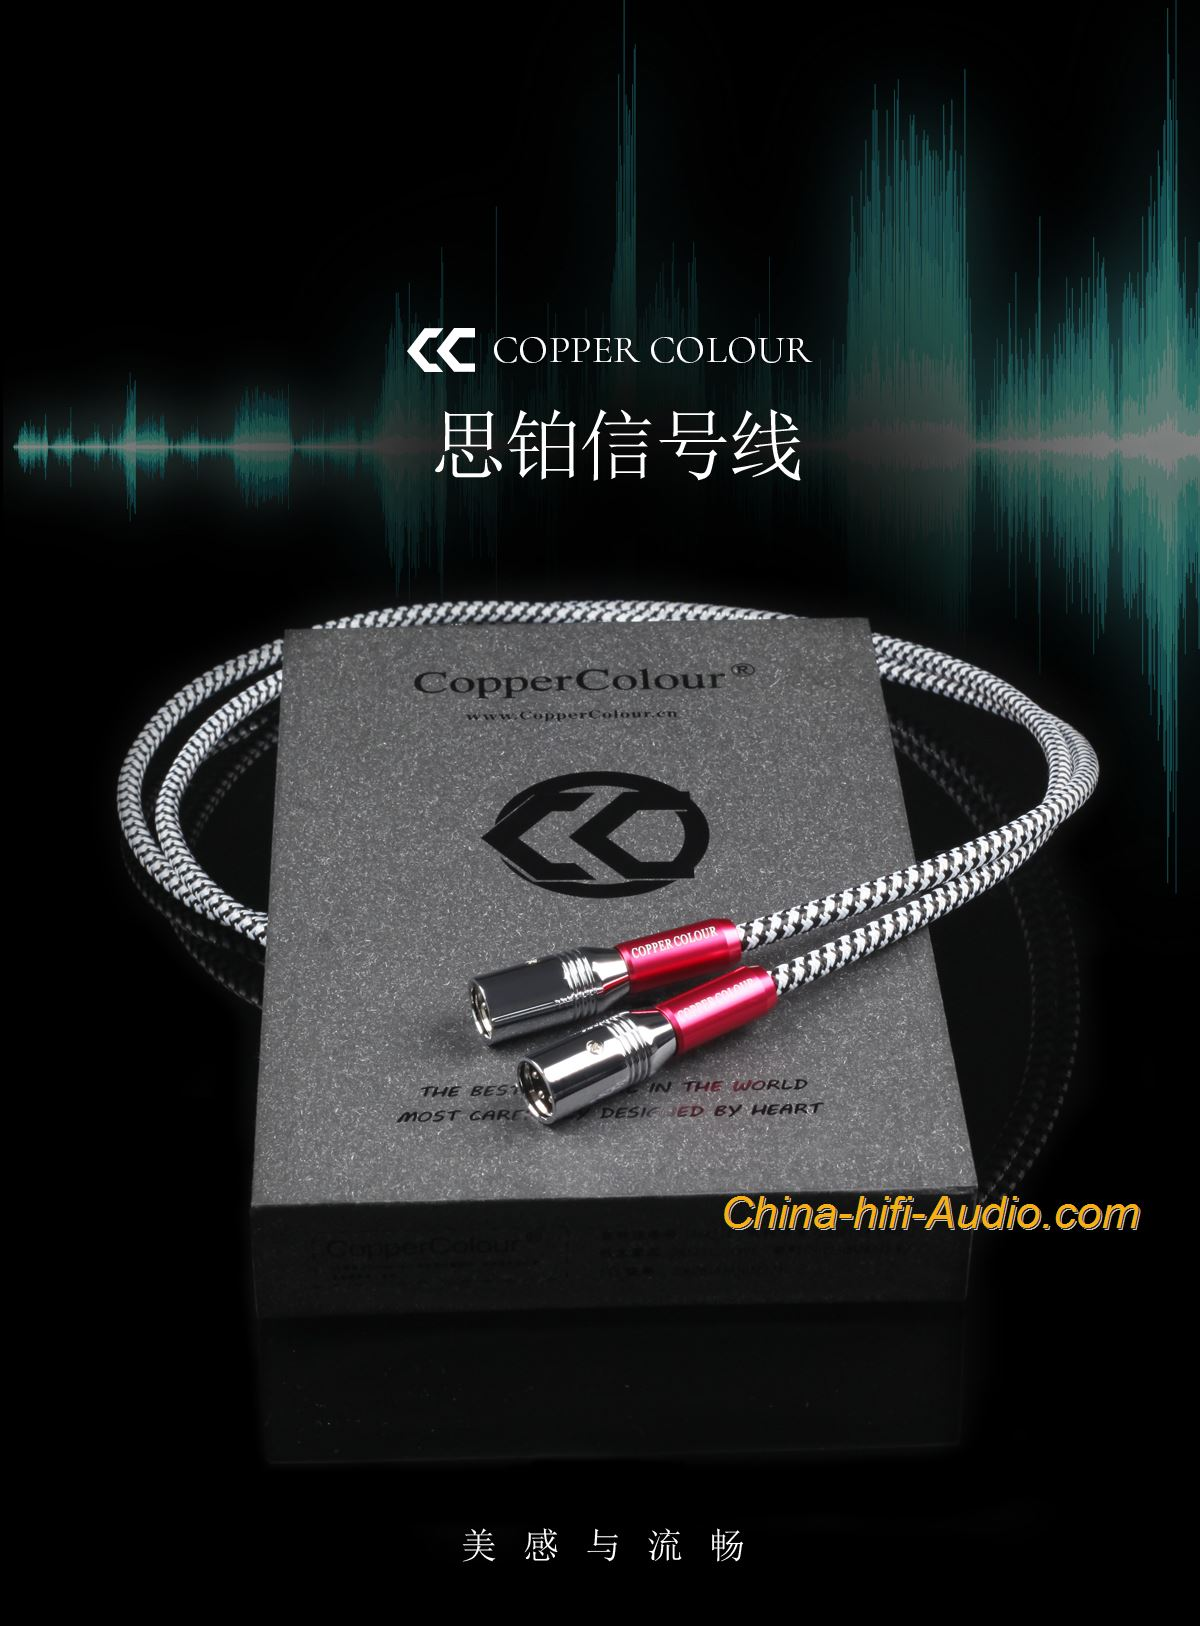 CopperColour CC WHISPER OCC XLR audiophile Audio cable interconect Balance cord